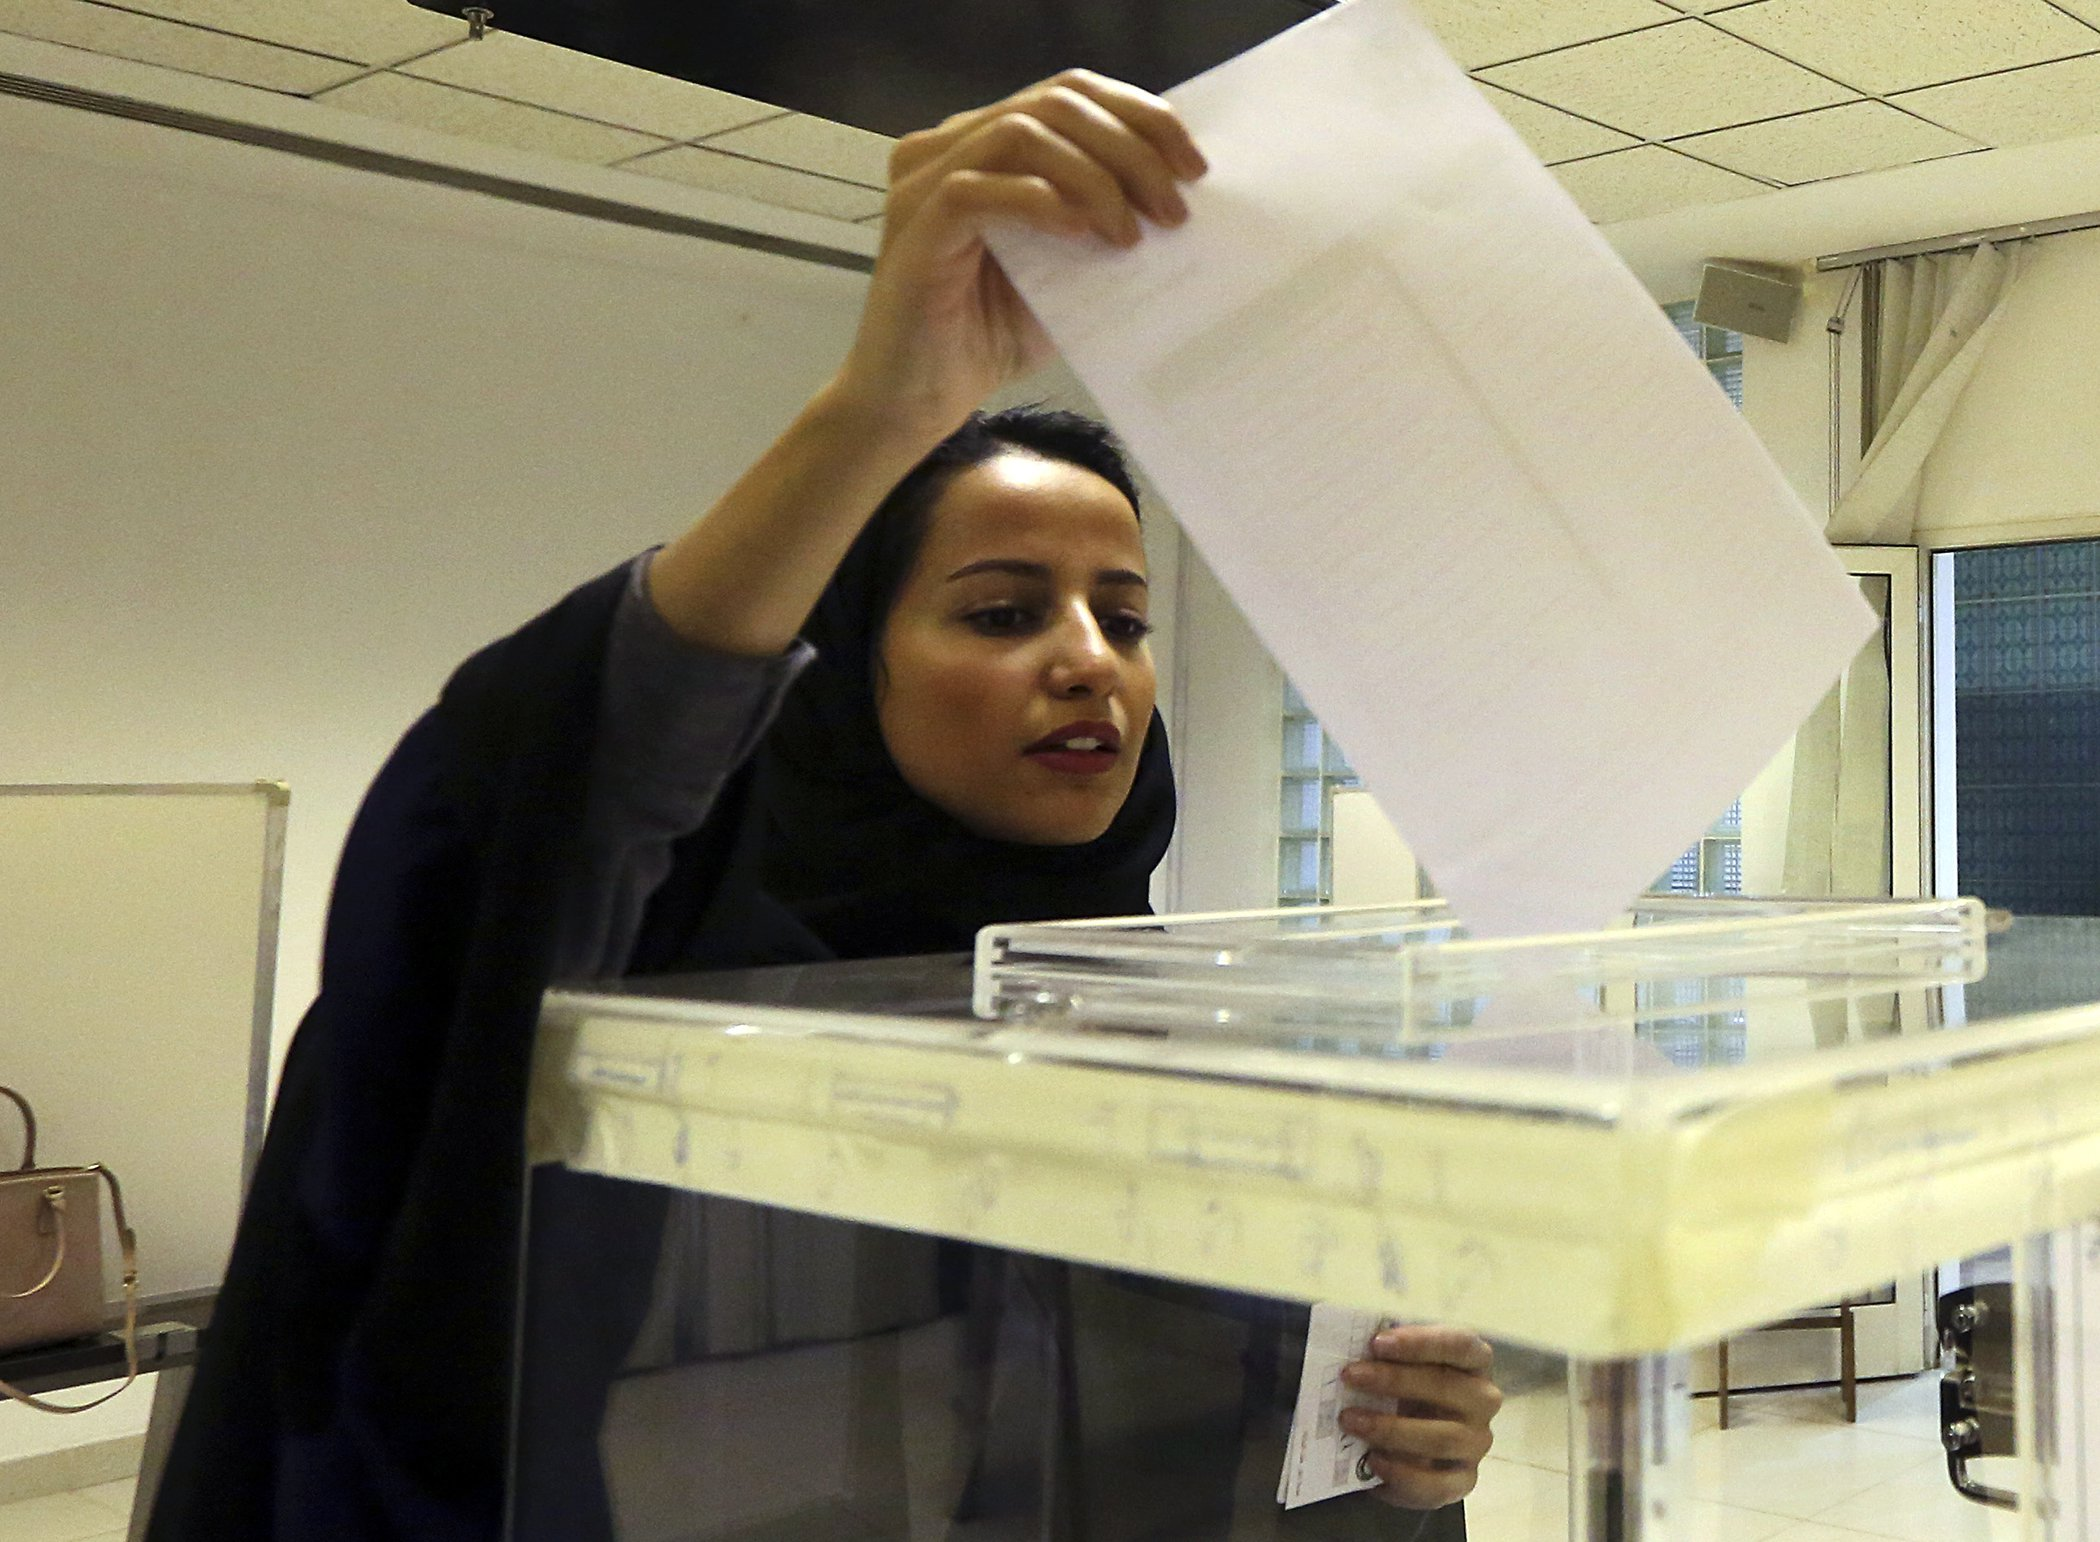 Voting-Around-The-World-Saudi-Arabia.jpg